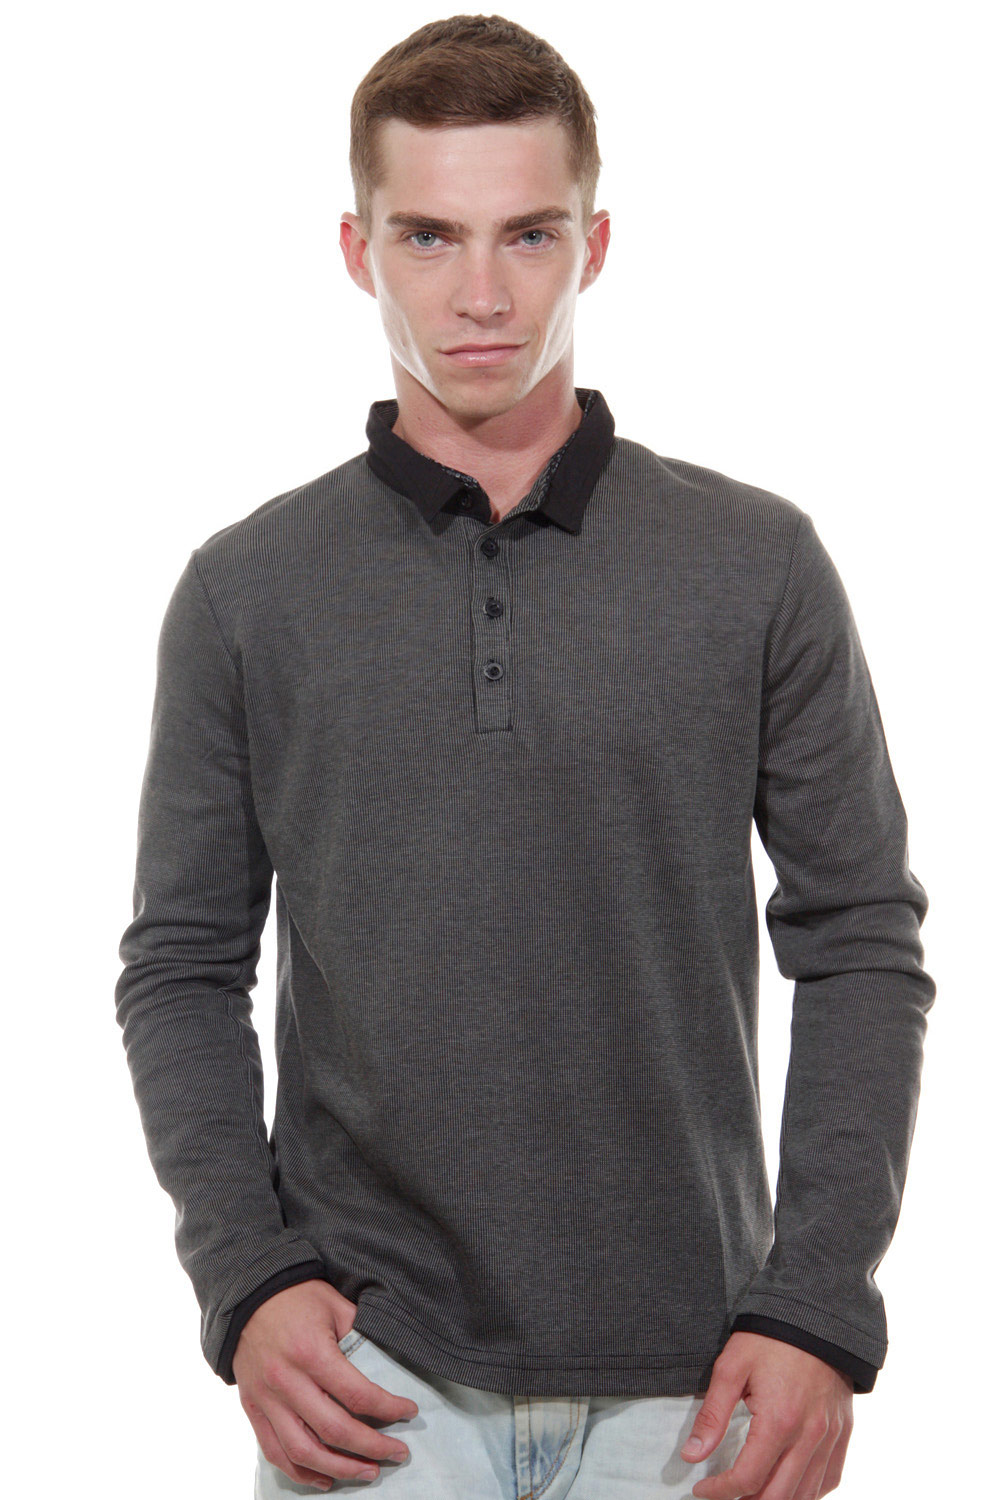 EXUMA polo long sleeve top slim fit at oboy.com